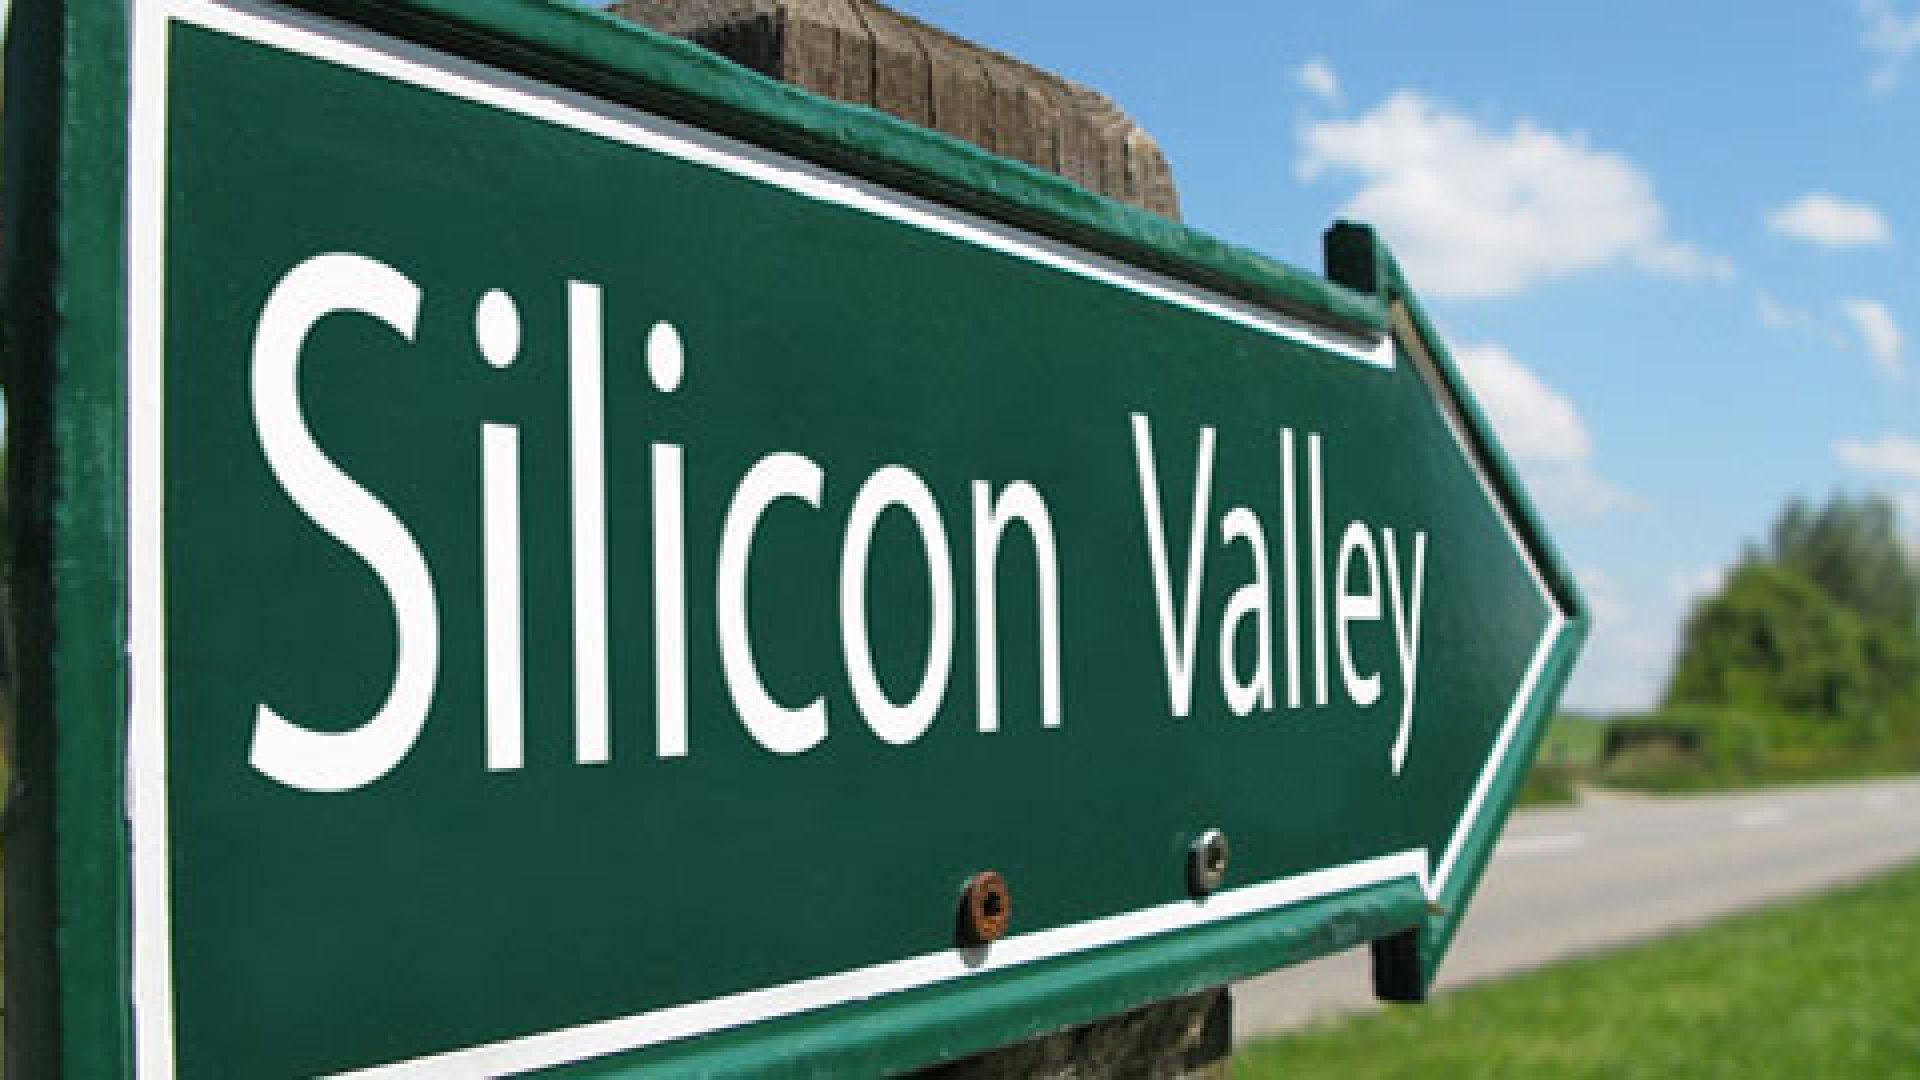 Report: Silicon Valley VC Confidence Rises Slightly